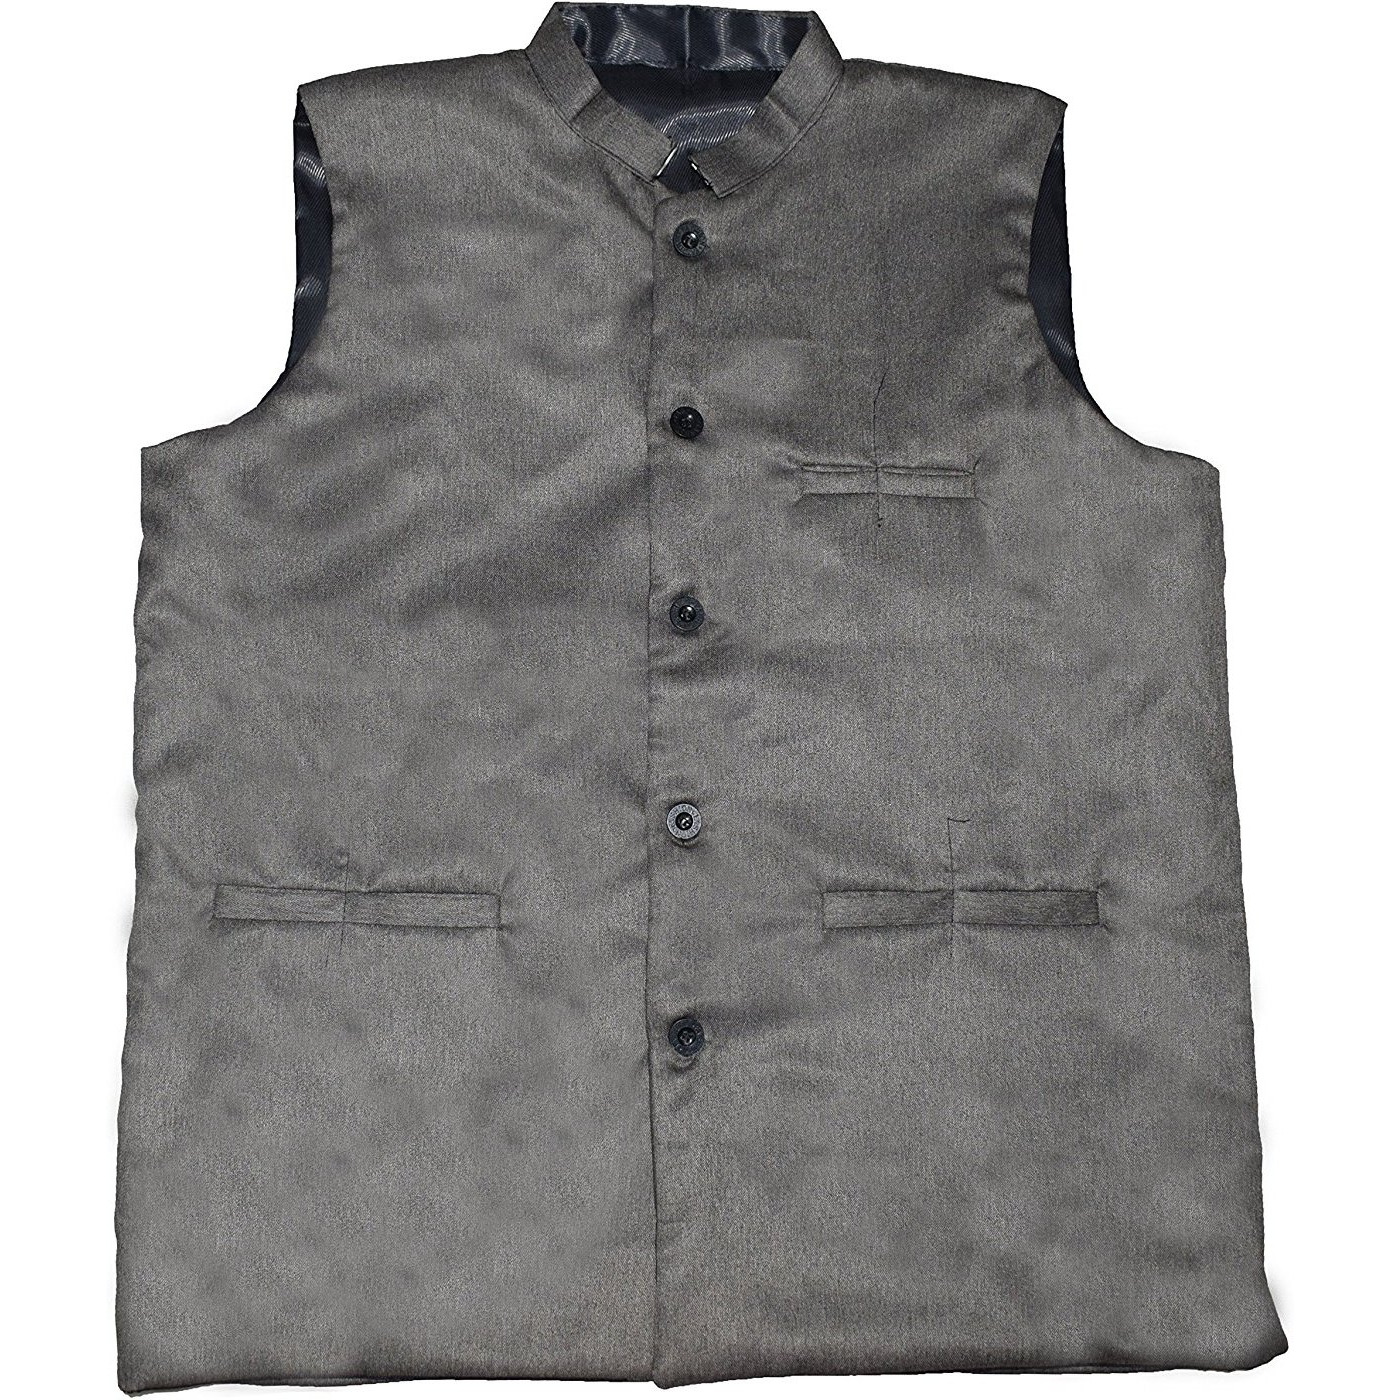 Men's Cotton Blend Jacket Festive Nehru Jacket Waistcoat